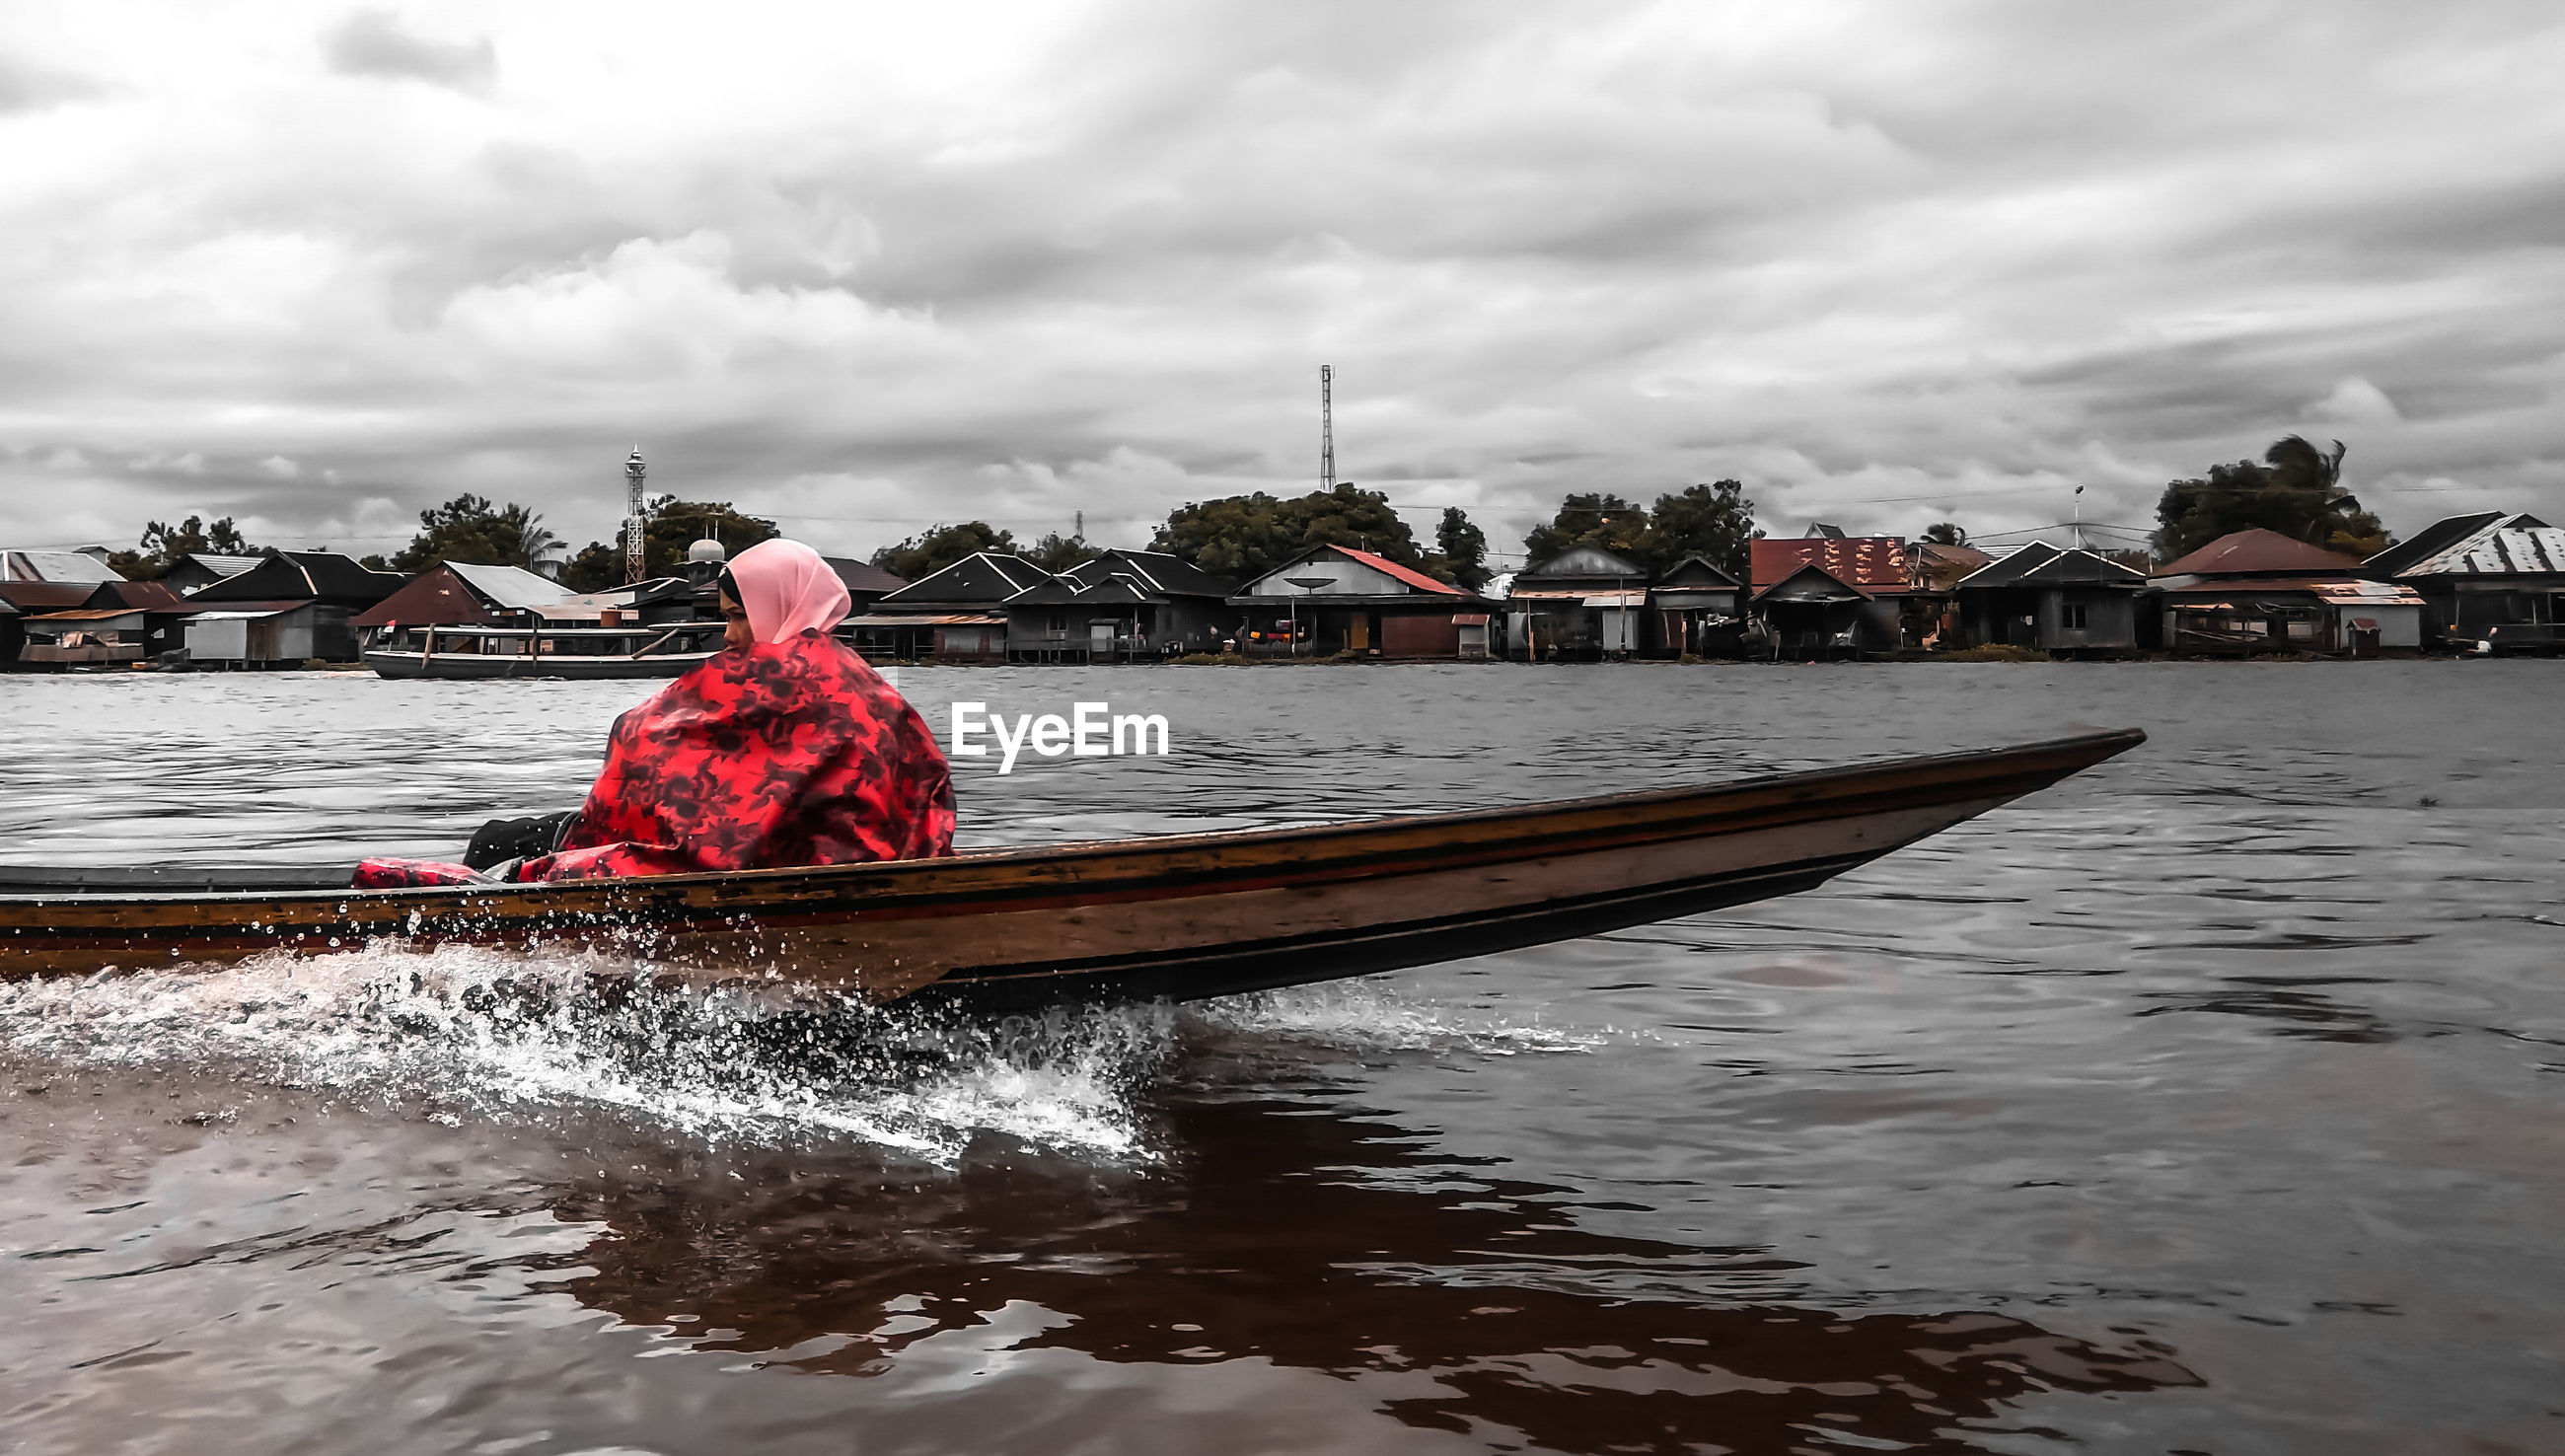 Man sailing on boat in river against sky